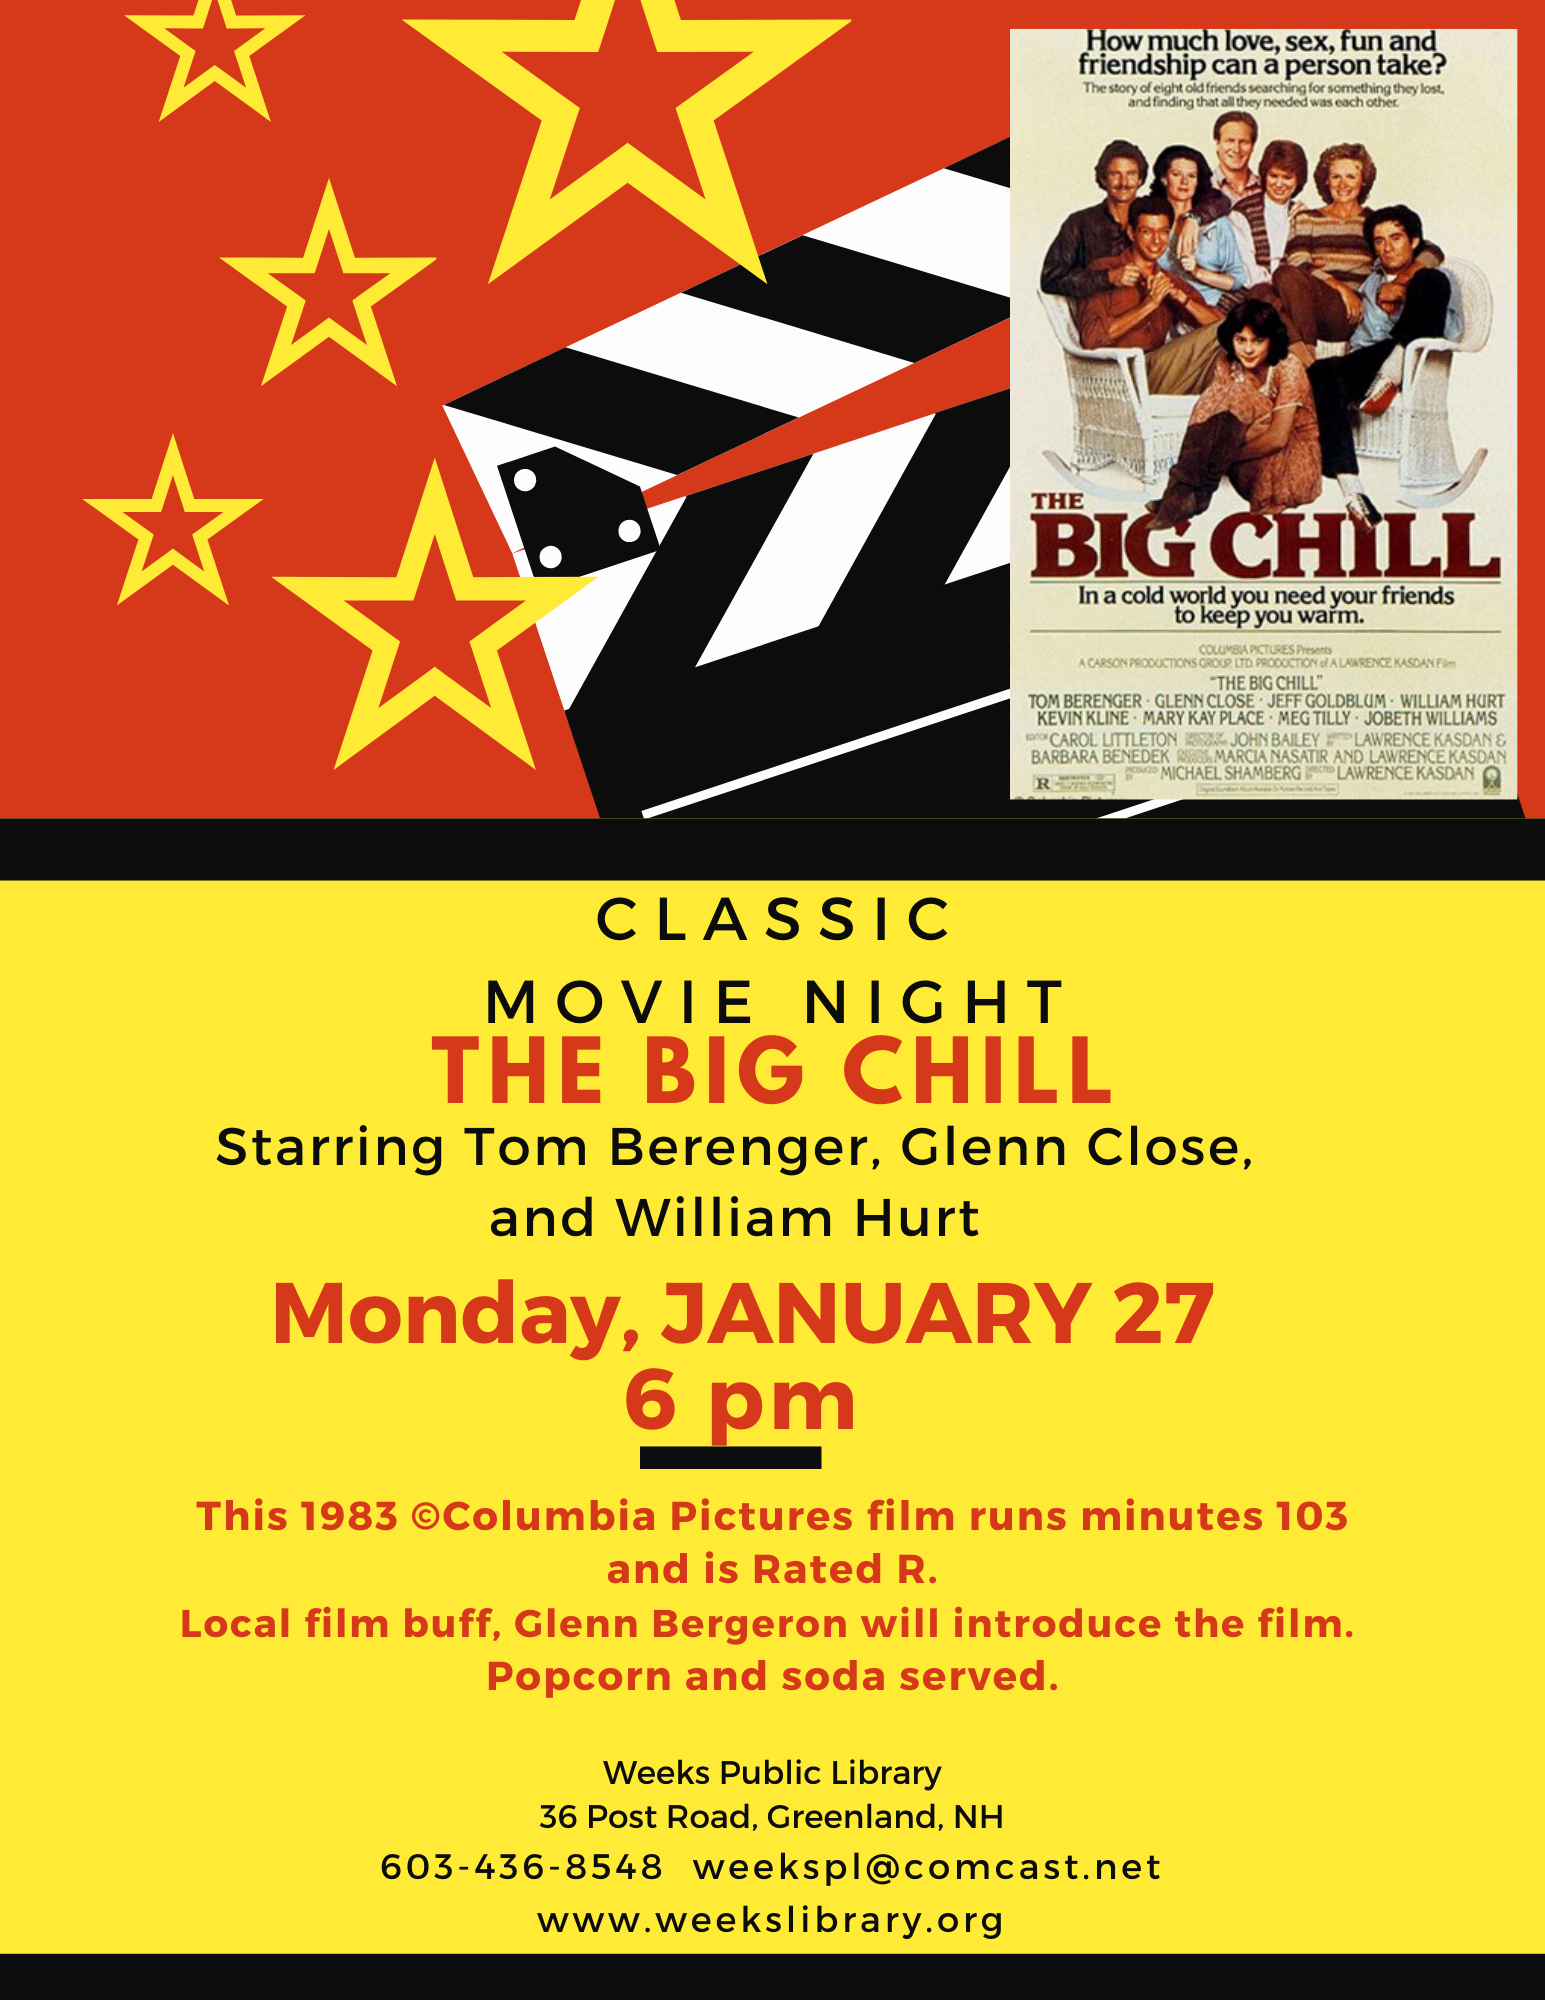 6:00pm Classic Movie Night – Weeks Public Library